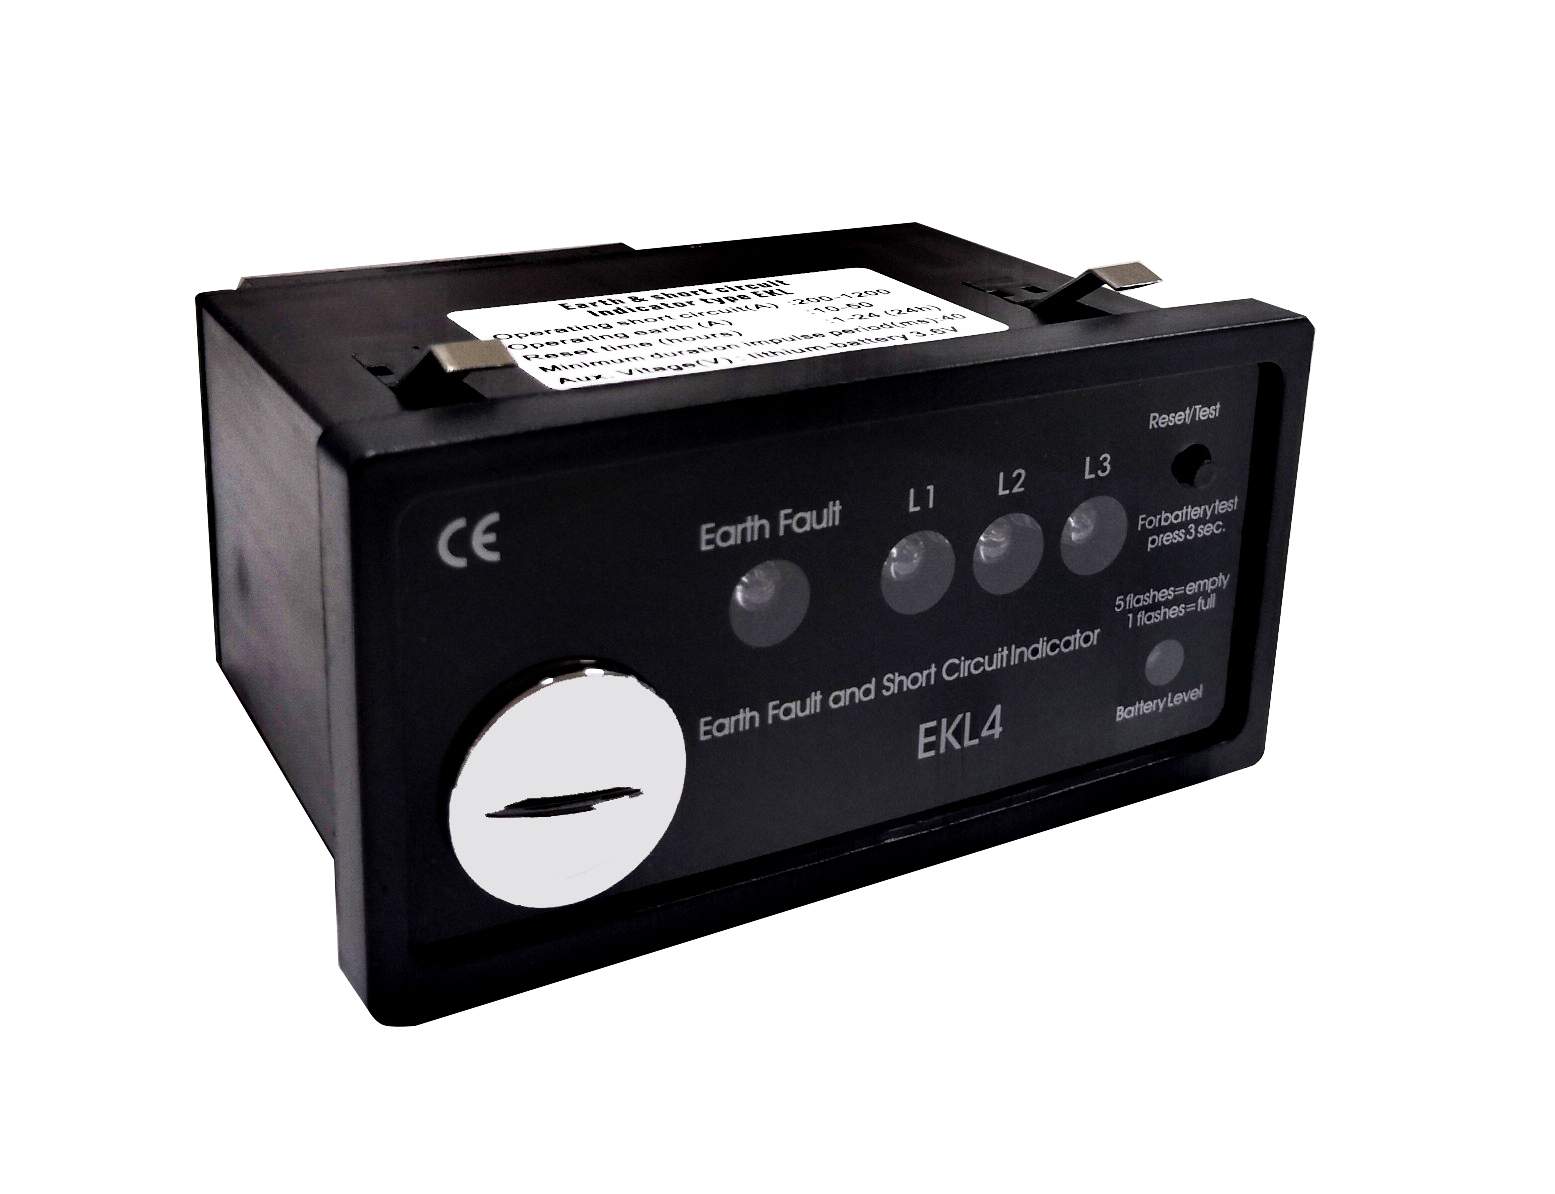 SNV-ELK4 Directional Short-Circuit and Directional Earth Fault Indicator